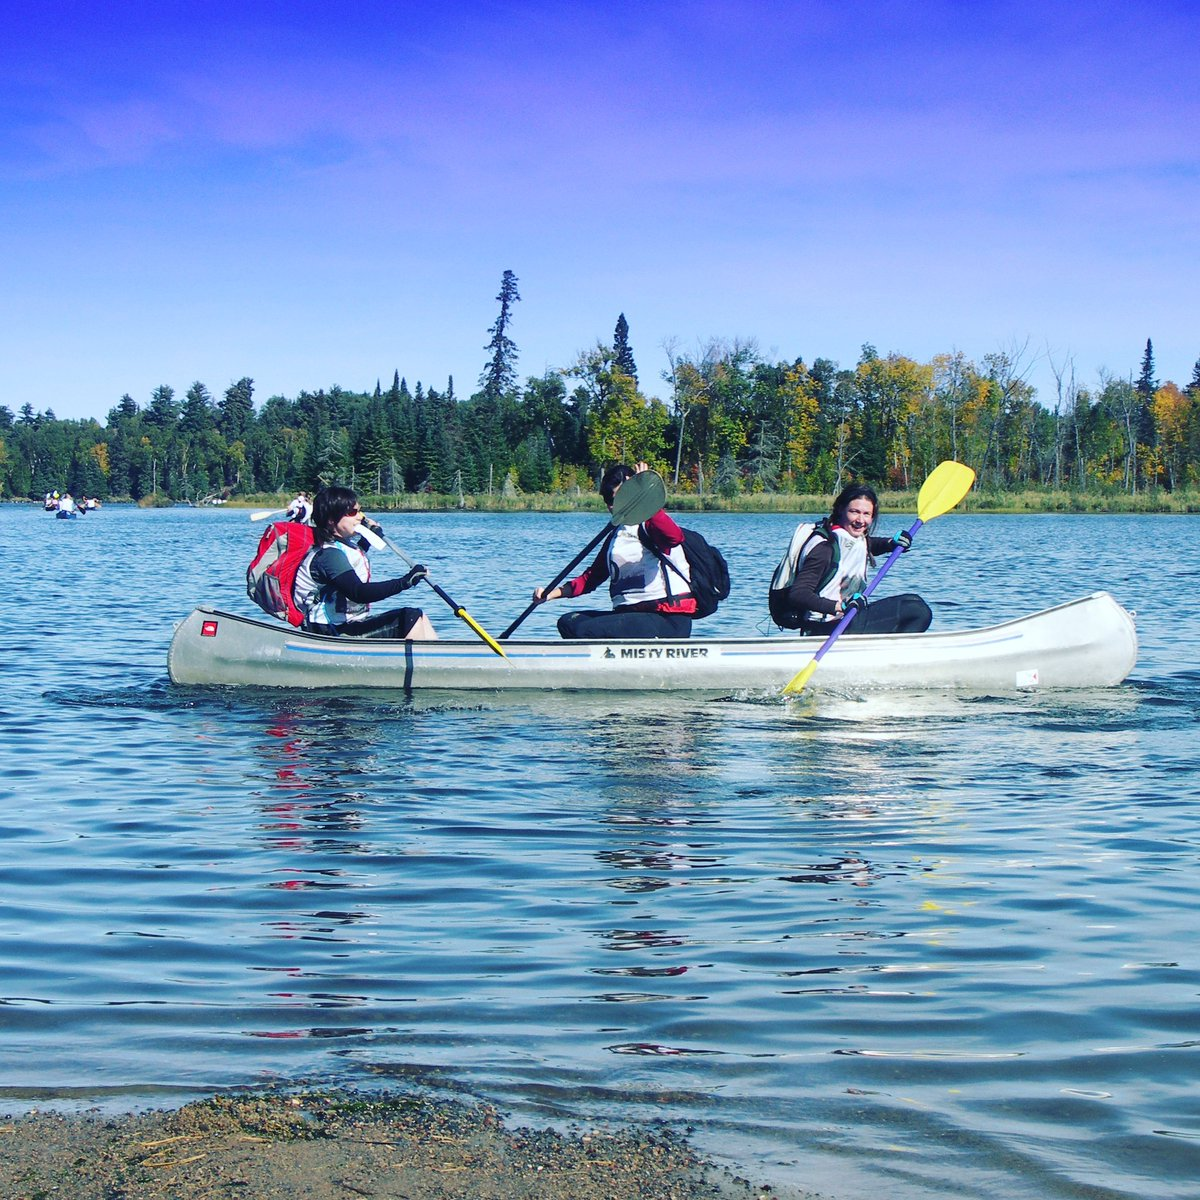 Sometimes in life (and in a race) when you DON'T work as a team, well let's just say things don't work lol #lifelessons101 Swamp Donkey Adventure Race is September 19th Whiteshell - Falcon Lake MB. Register today at http://SwampDonkeyAR.com  #SwampDonkeyAR #FalconLake #Manitoba #ARpic.twitter.com/fr3qvhw6lC